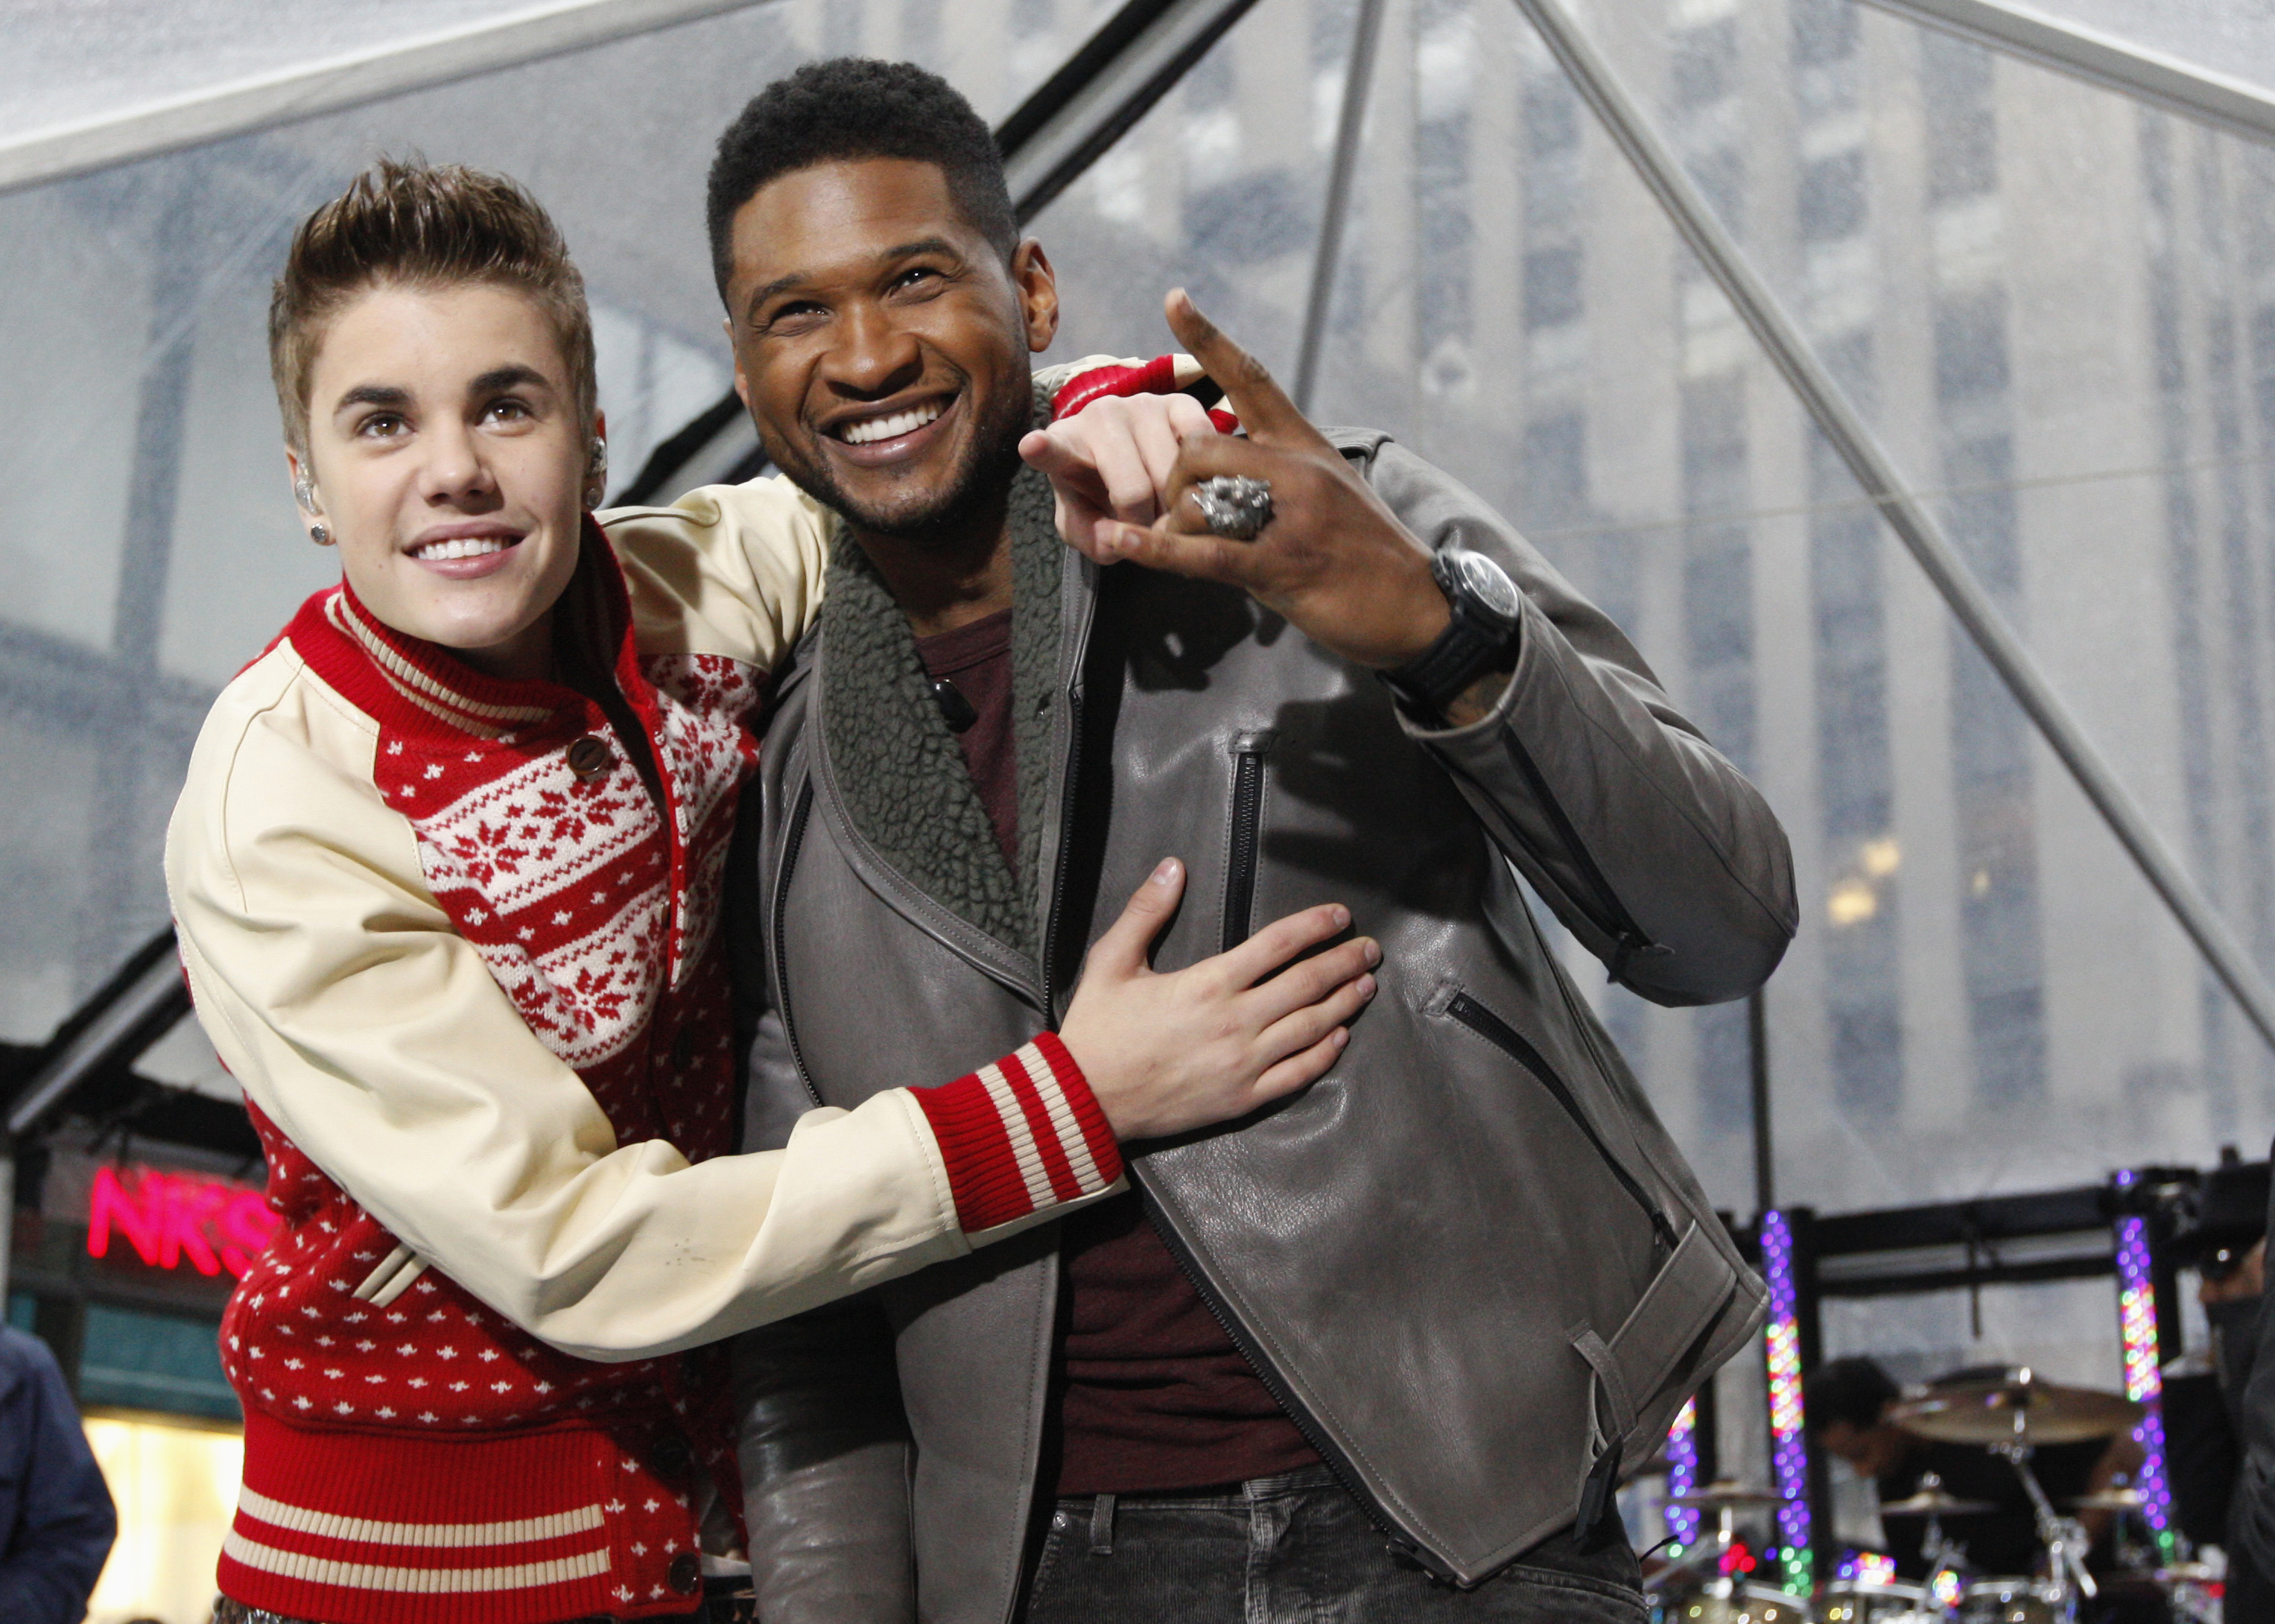 Usher on Bieber: 'I'll punch him in the chest when I need to'